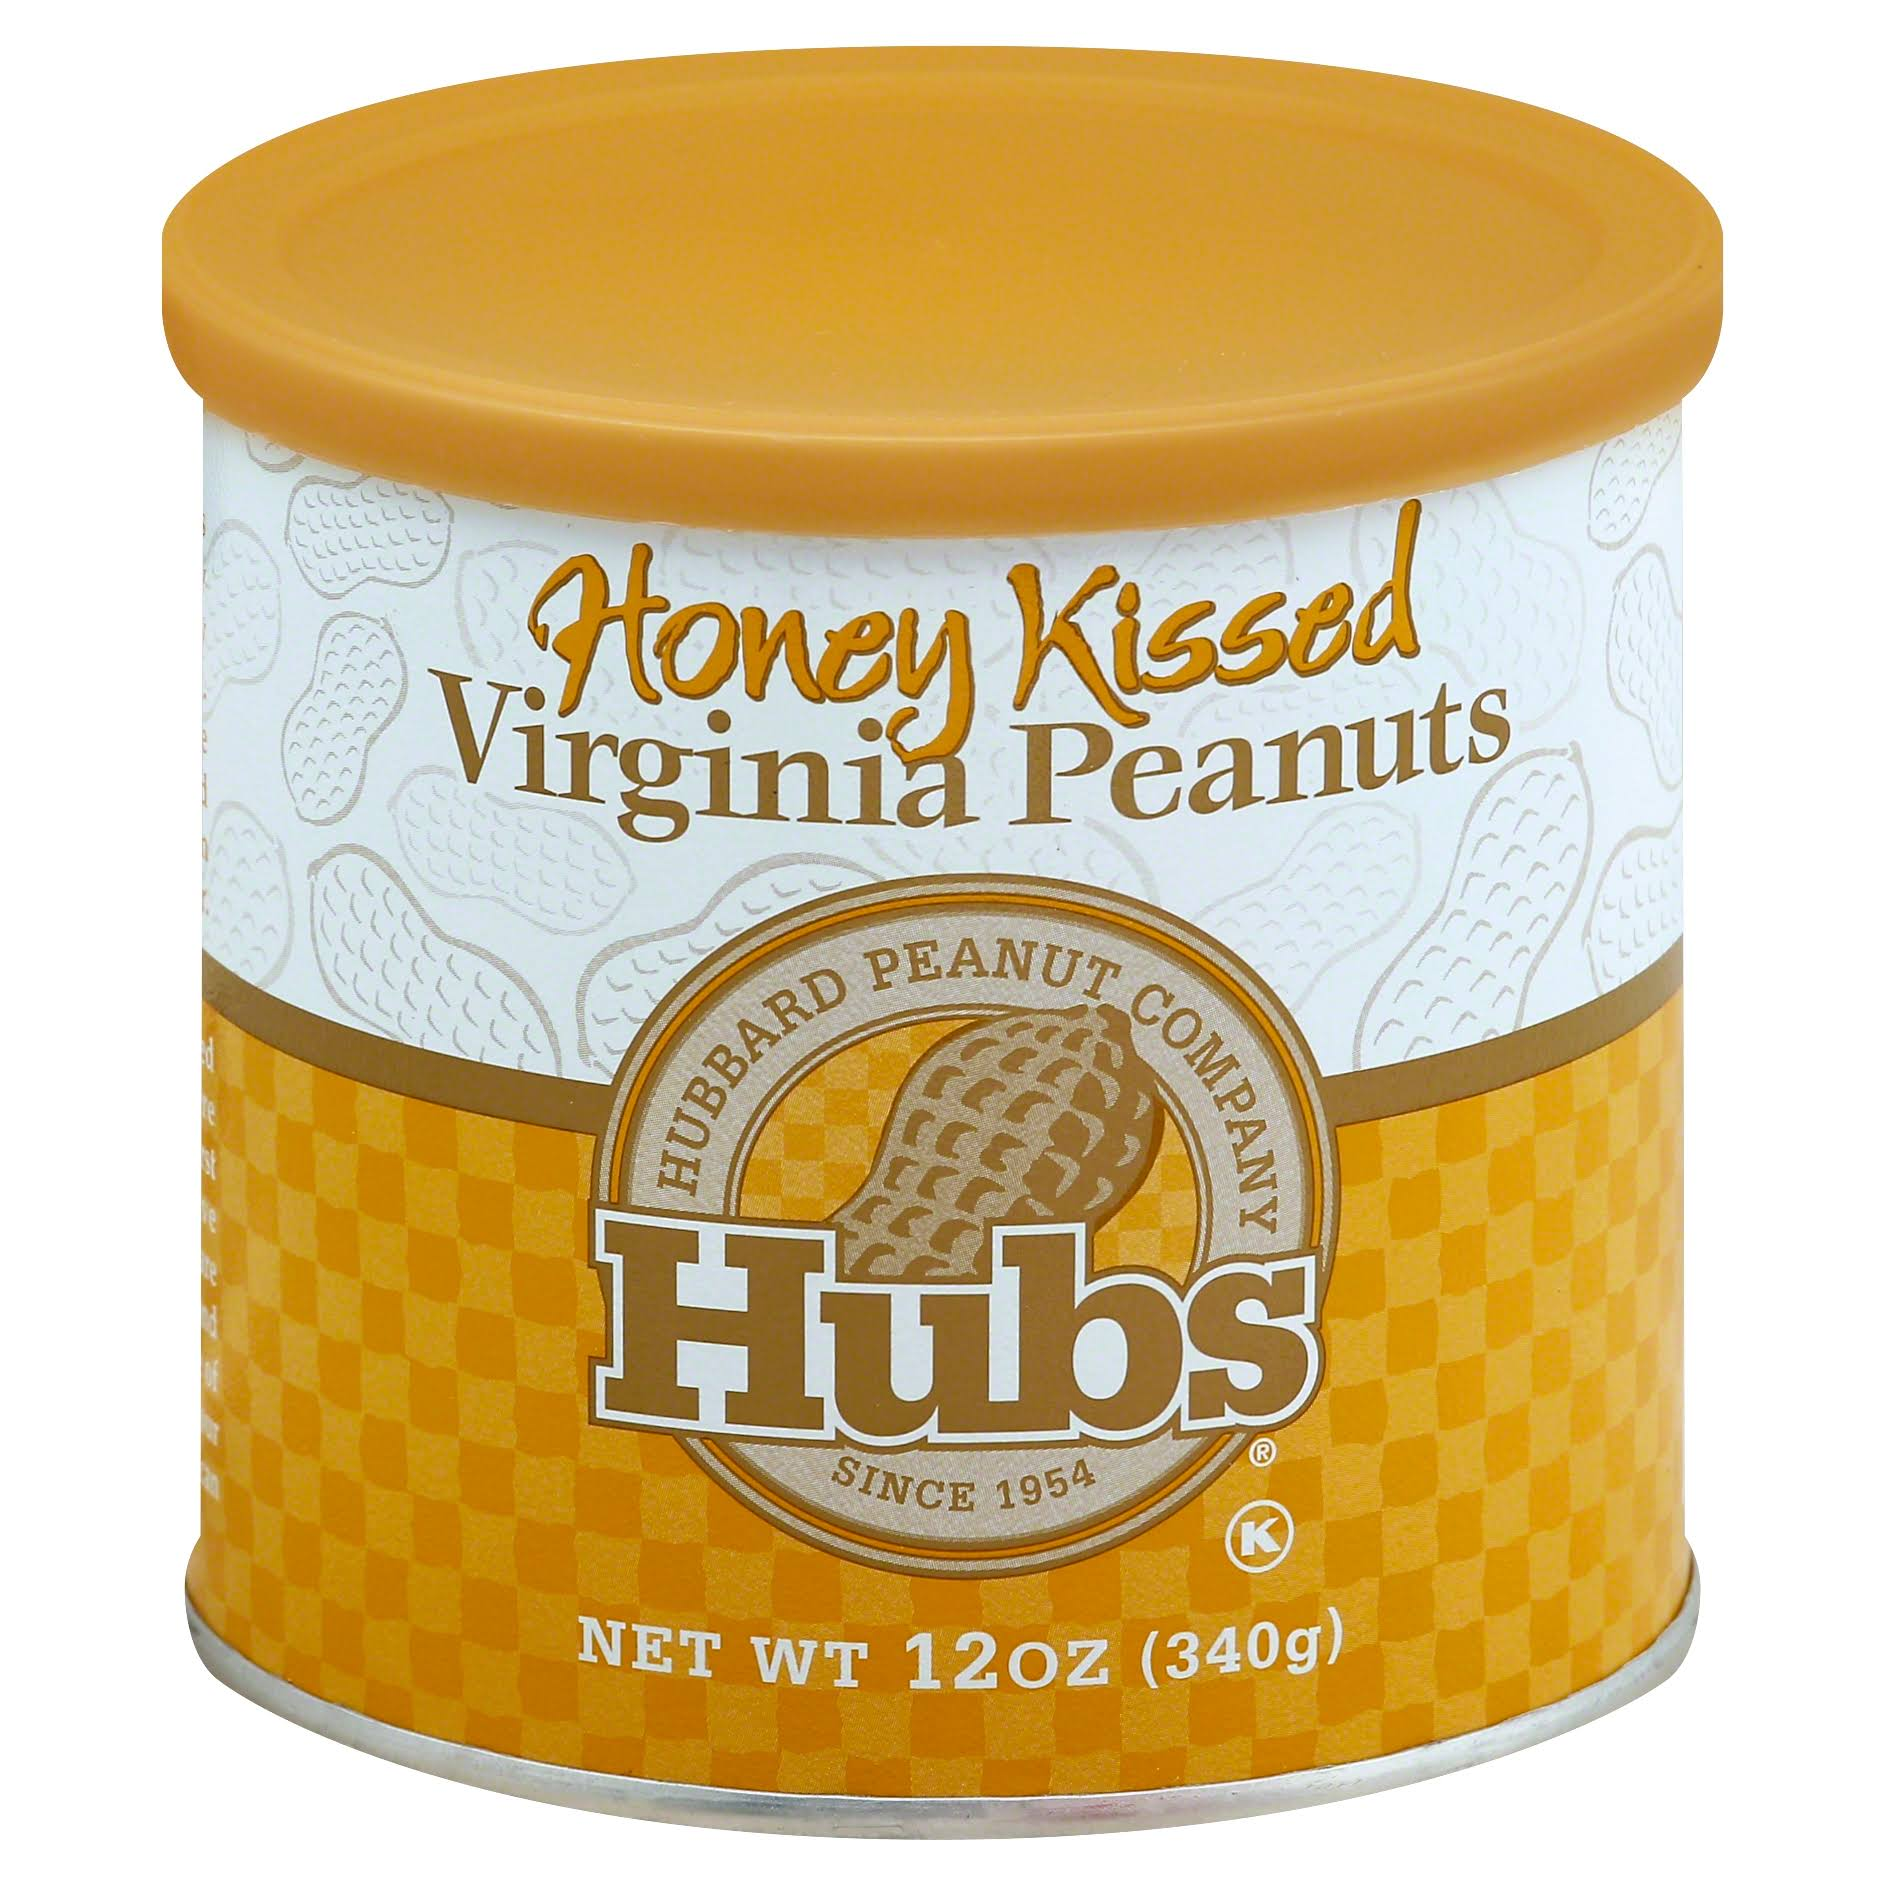 Hubs Peanuts, Virginia, Honey Kissed - 12 oz